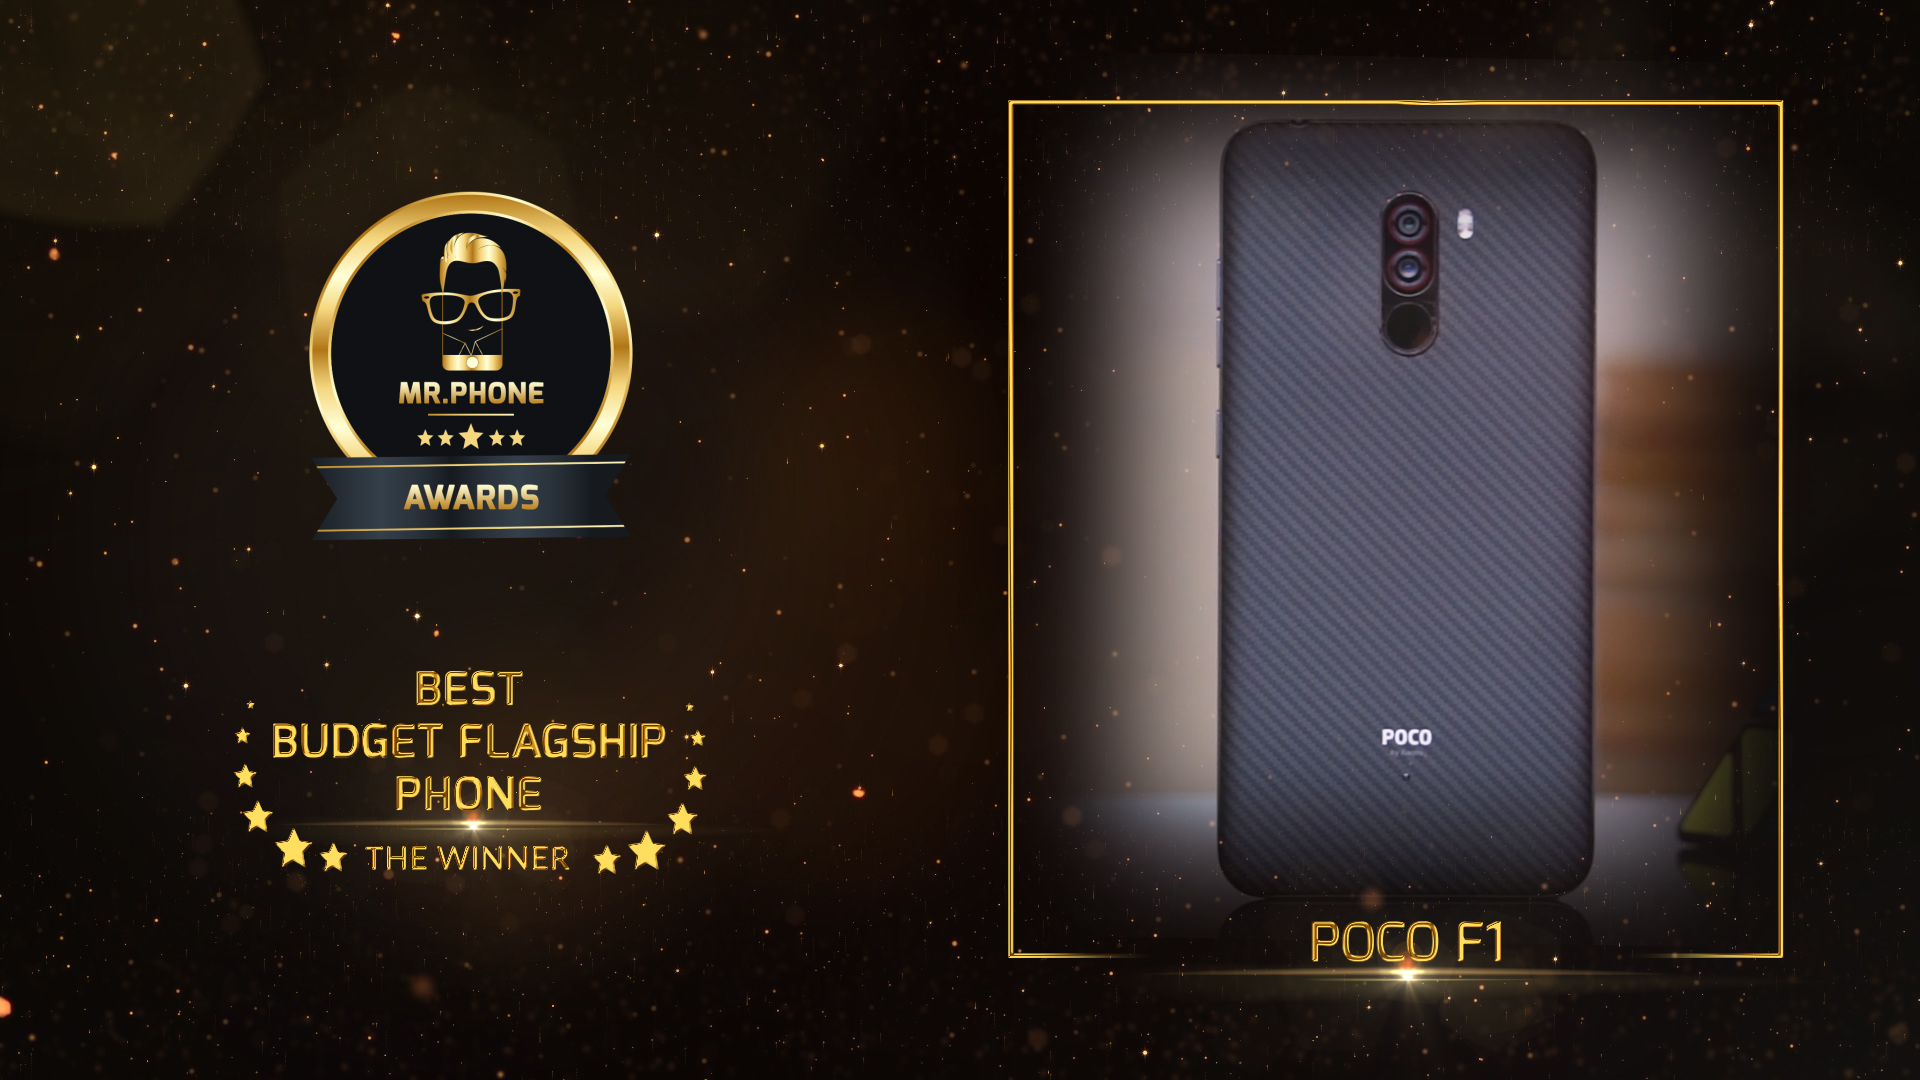 Mr. Phone Best Budget Flagship Phone 2018 - Poco F1